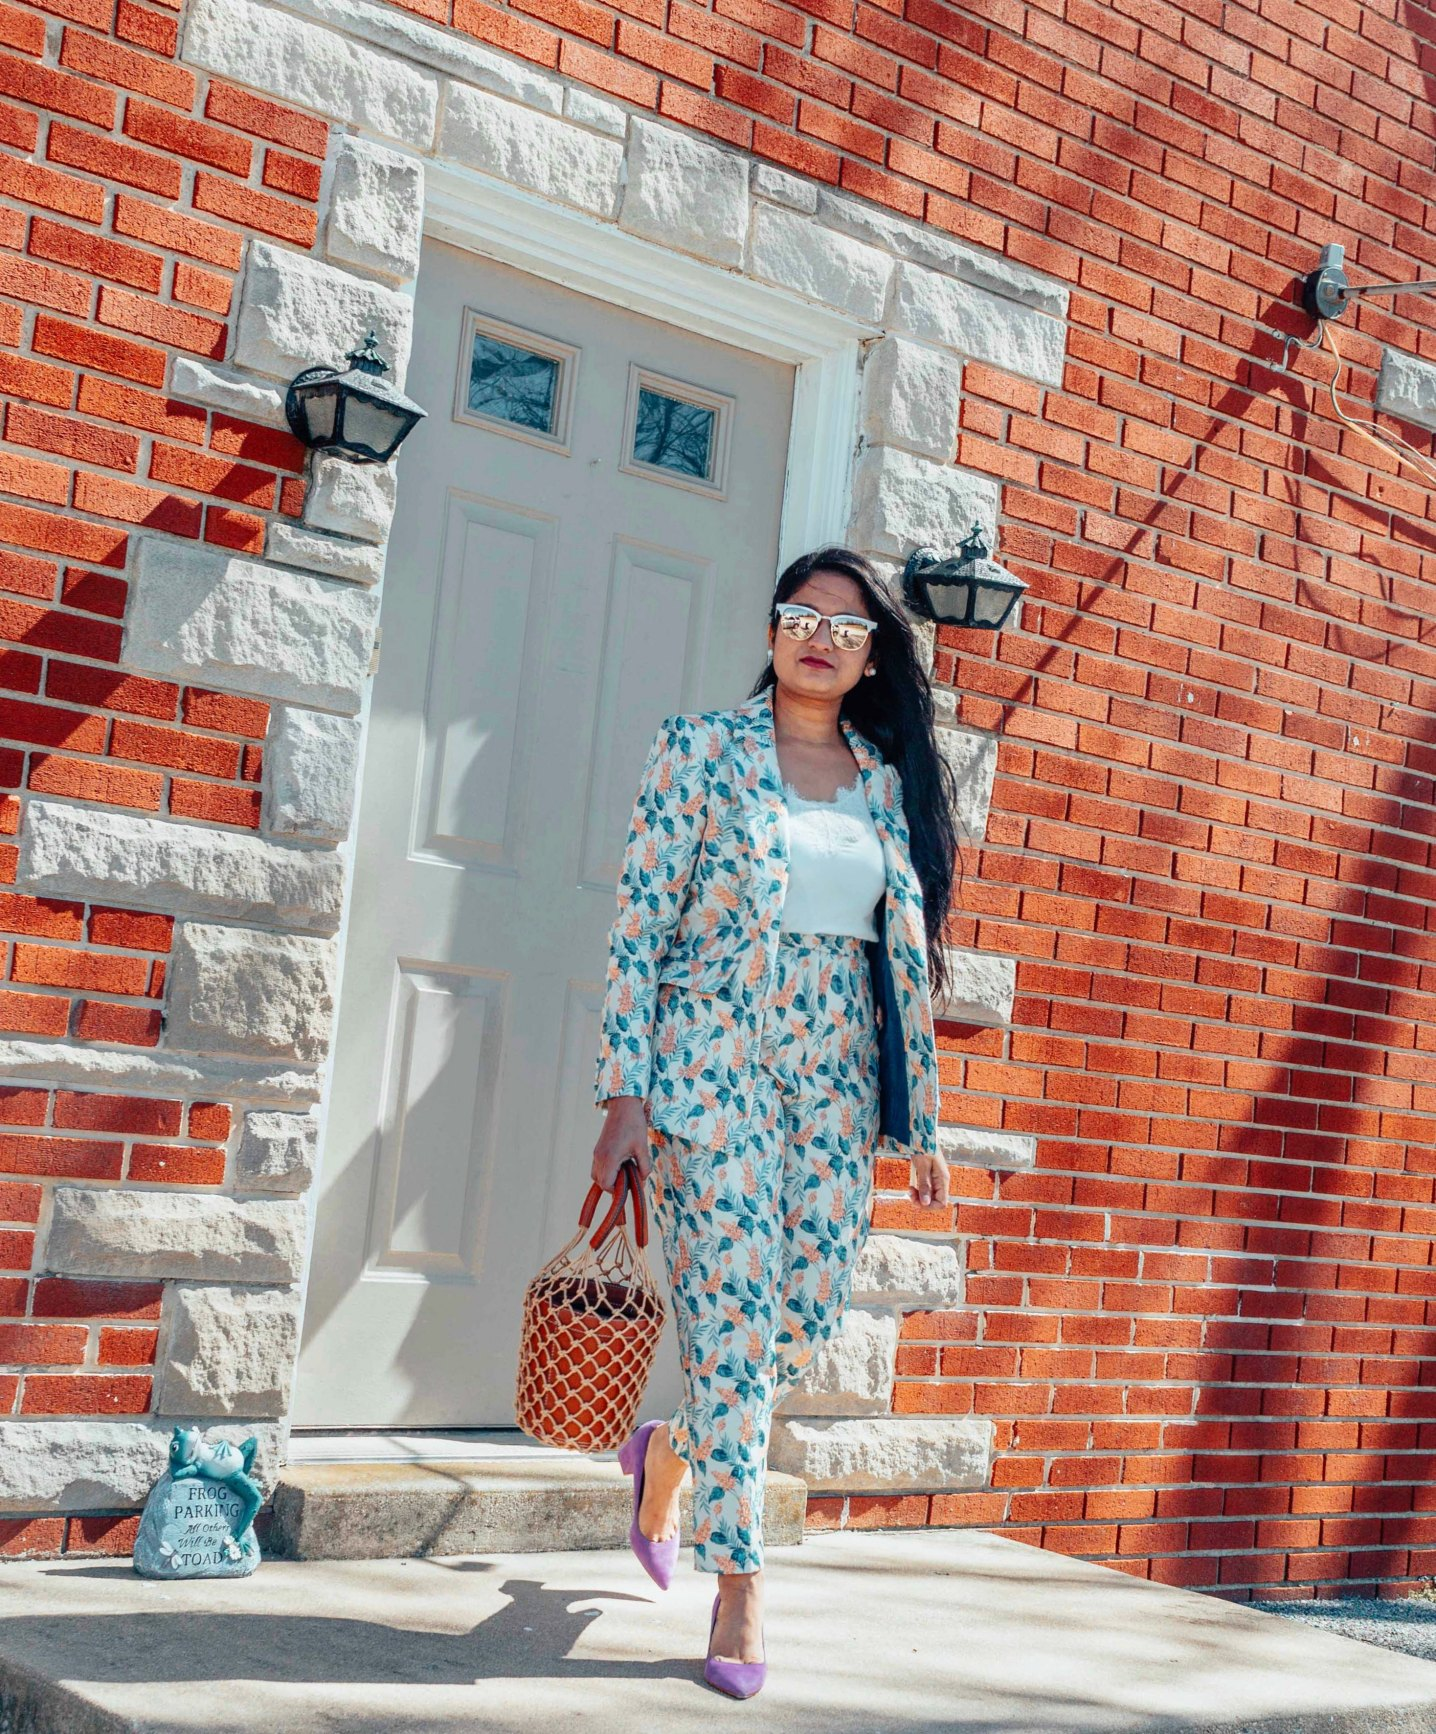 Wearing Asos tailored jacquard wisteria floral blazer two-piece | Modest Spring outfits featured by top US fashion blog, Dreaming Loud: image of a woman wearing an ASOS floral pant suit, Abercrombie and Fitch lace cami, STAUD bag, Marc Fisher pumps and Ray ban aviator sunglasses